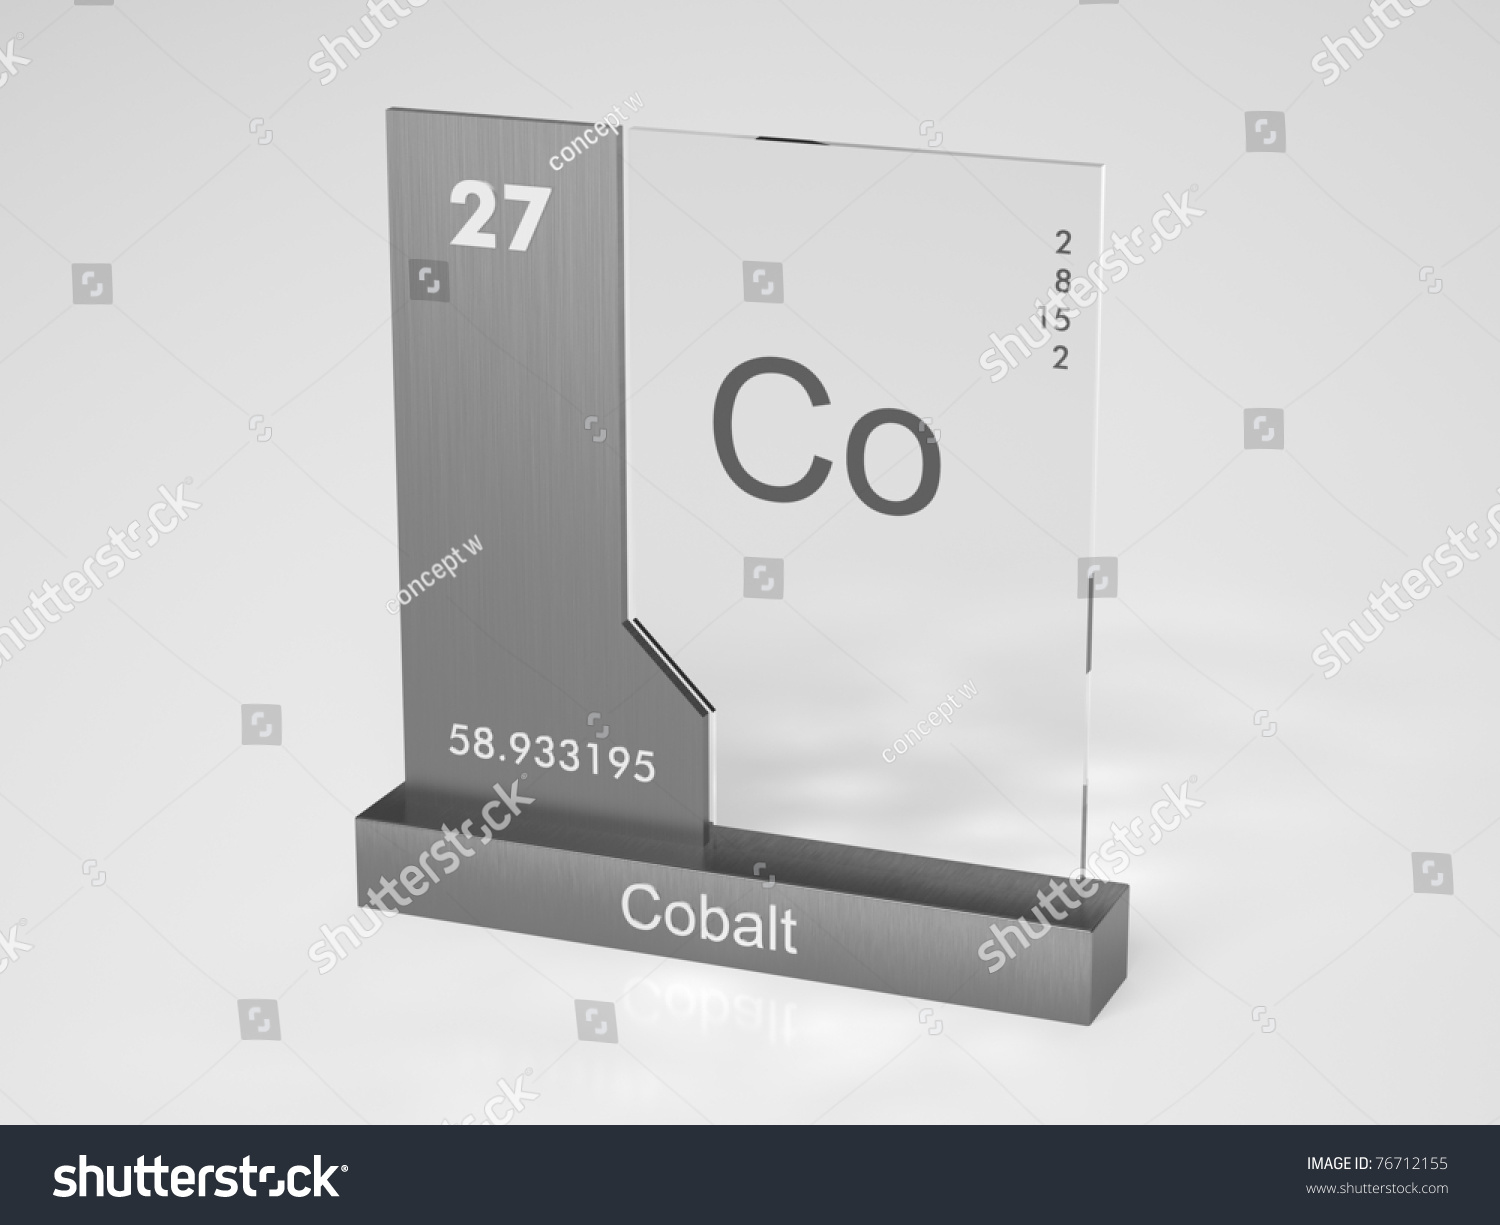 Cobalt symbol co chemical element periodic stock illustration cobalt symbol co chemical element of the periodic table gamestrikefo Image collections